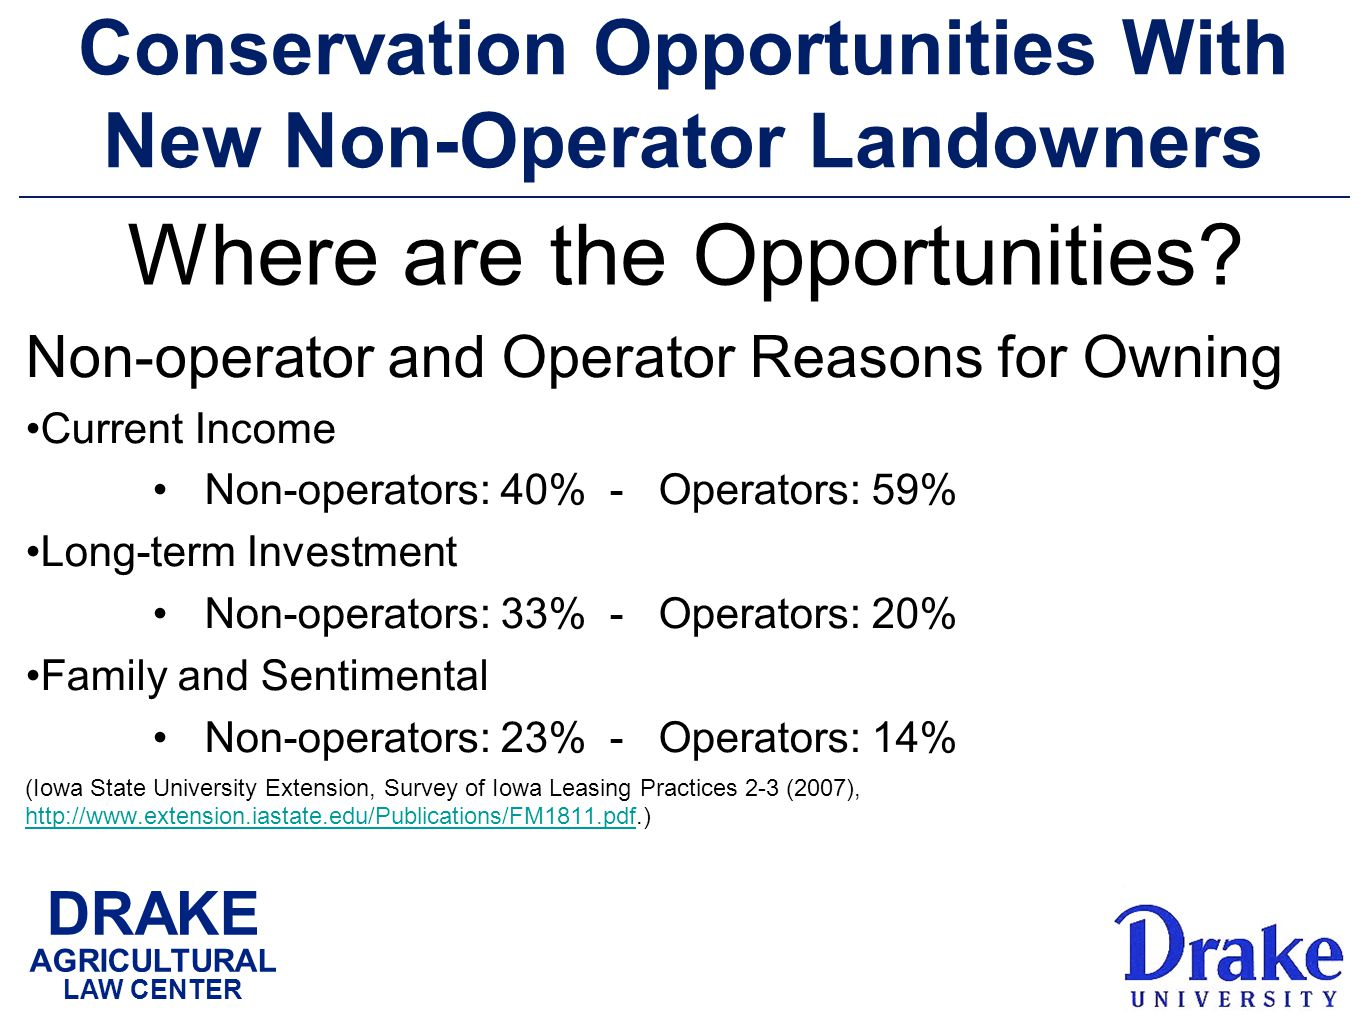 DRAKE AGRICULTURAL LAW CENTER Conservation Opportunities With New Non-Operator Landowners Non-operator and Operator Reasons for Owning Current Income Non-operators: 40% - Operators: 59% Long-term Investment Non-operators: 33% - Operators: 20% Family and Sentimental Non-operators: 23% - Operators: 14% (Iowa State University Extension, Survey of Iowa Leasing Practices 2-3 (2007), http://www.extension.iastate.edu/Publications/FM1811.pdf.) http://www.extension.iastate.edu/Publications/FM1811.pdf Where are the Opportunities